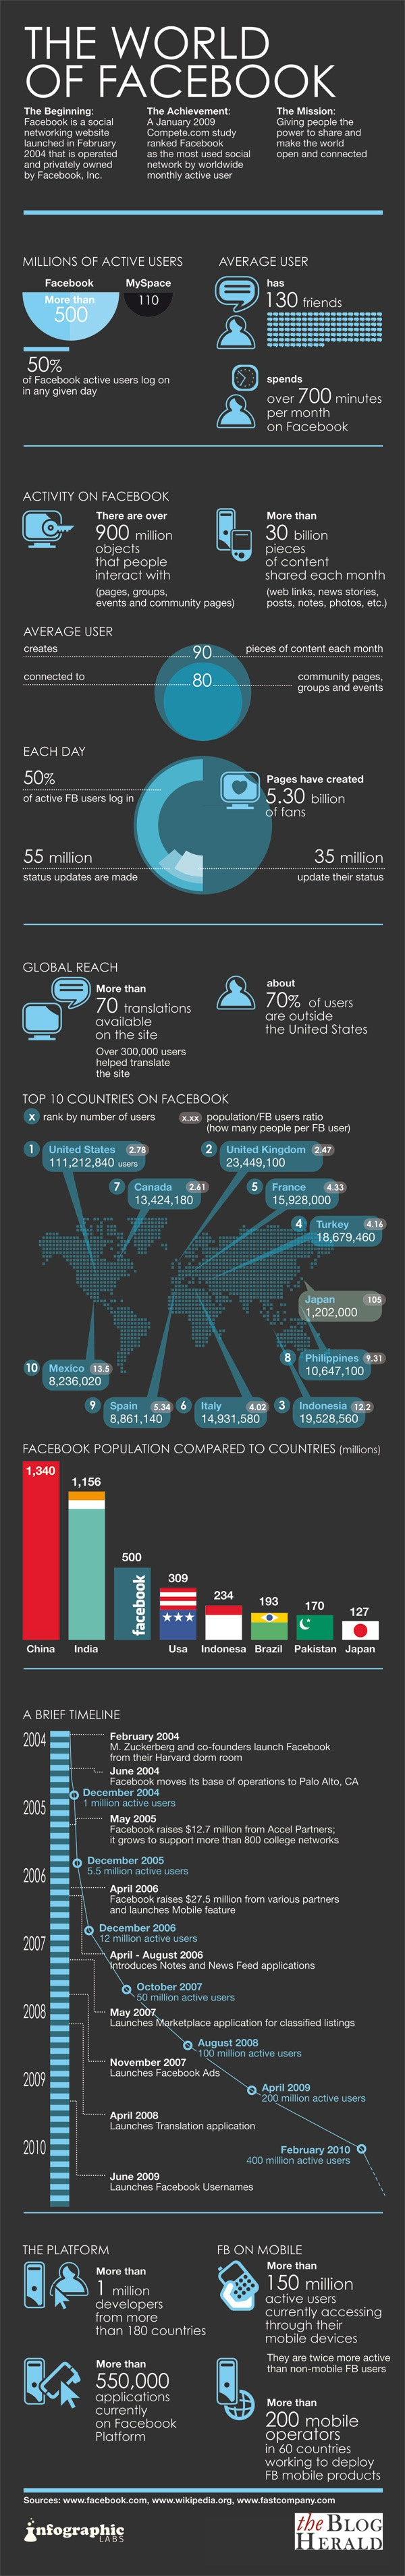 The world of FaceBook #infographic